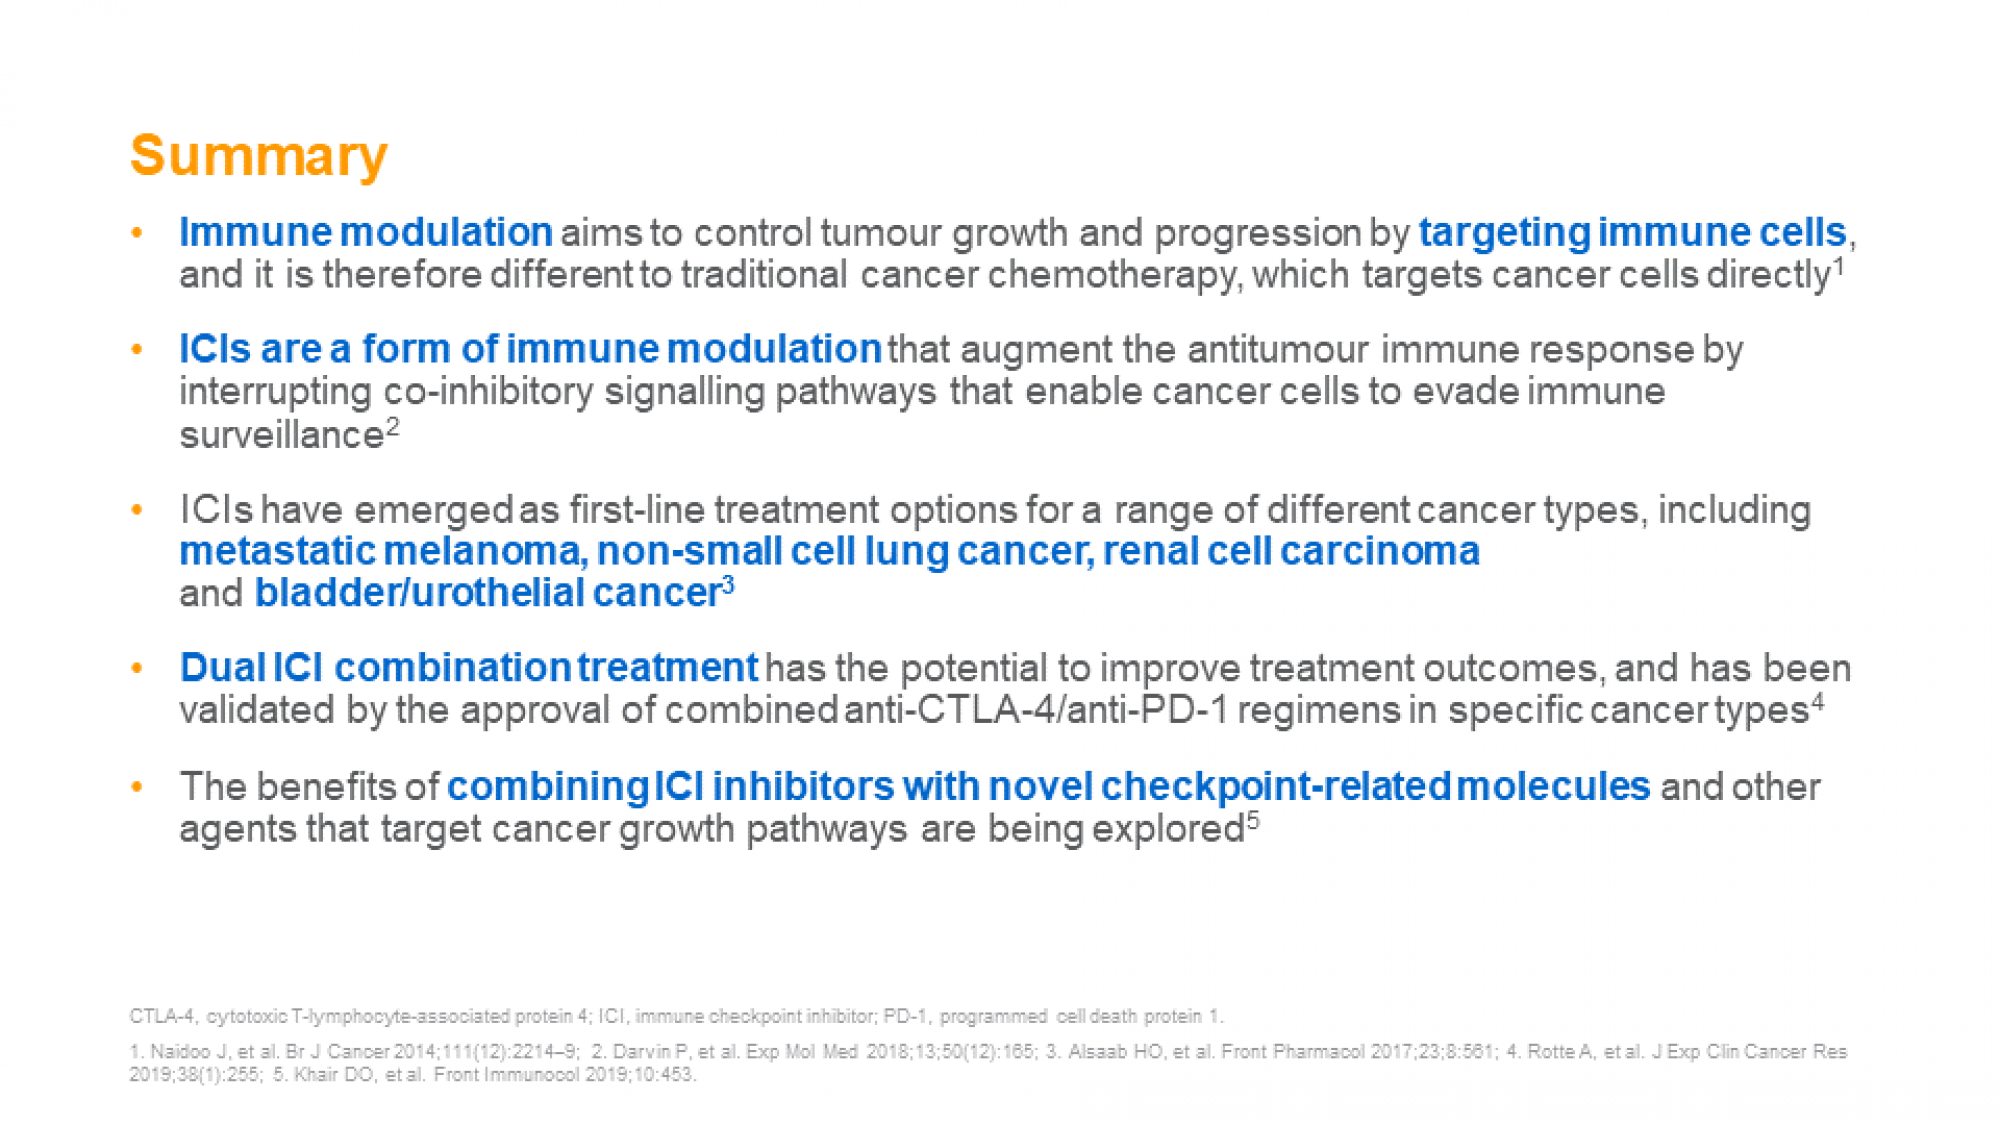 immuno-oncology and checkpoint inhibition